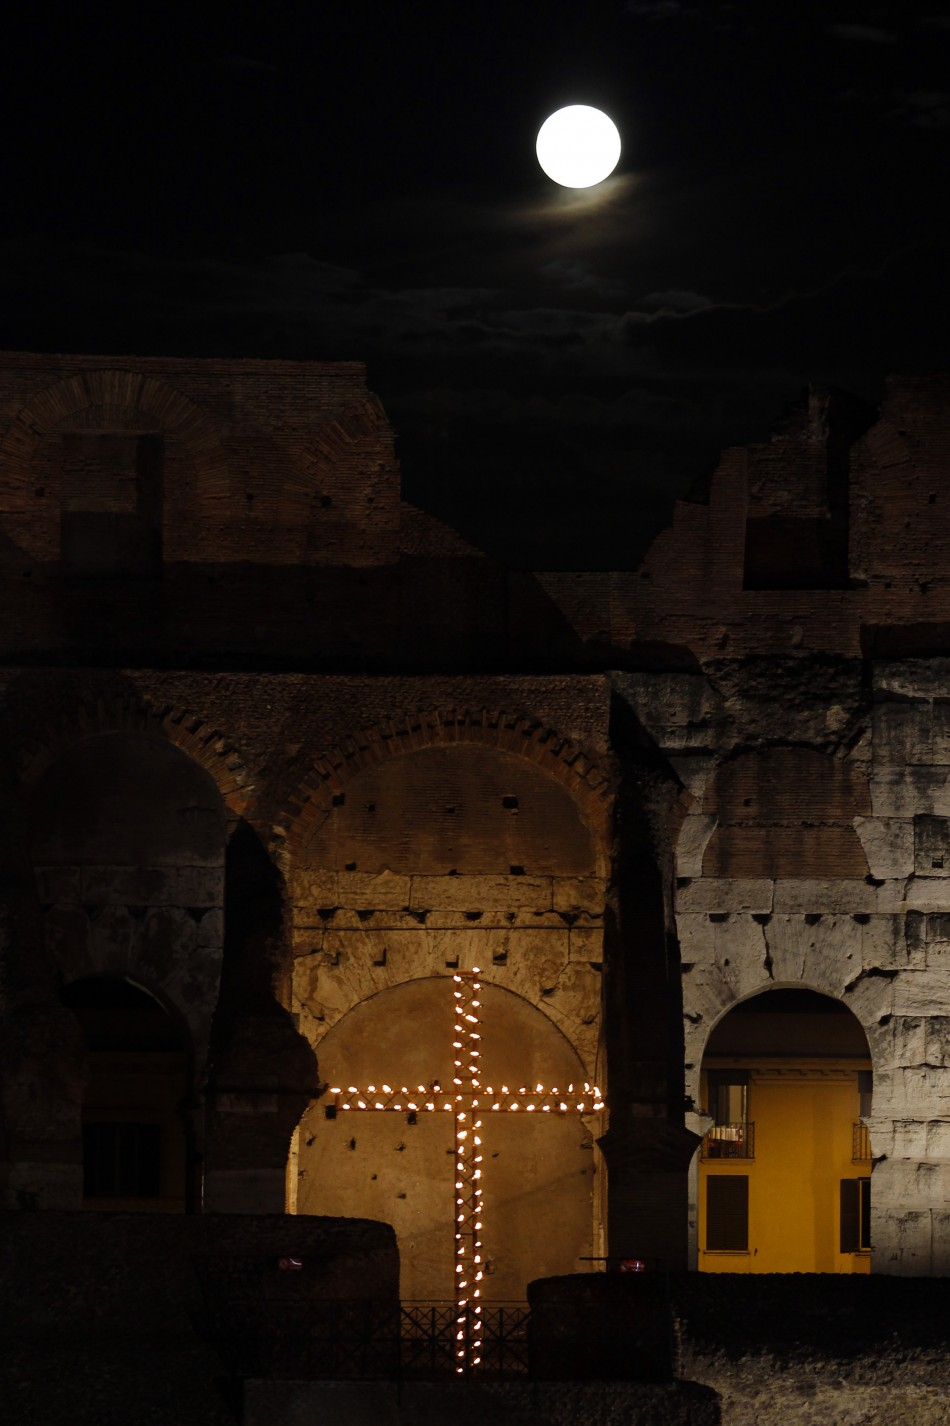 The full moon raises over the Colosseum before the Via Crucis (Way of the Cross) procession in downtown Rome